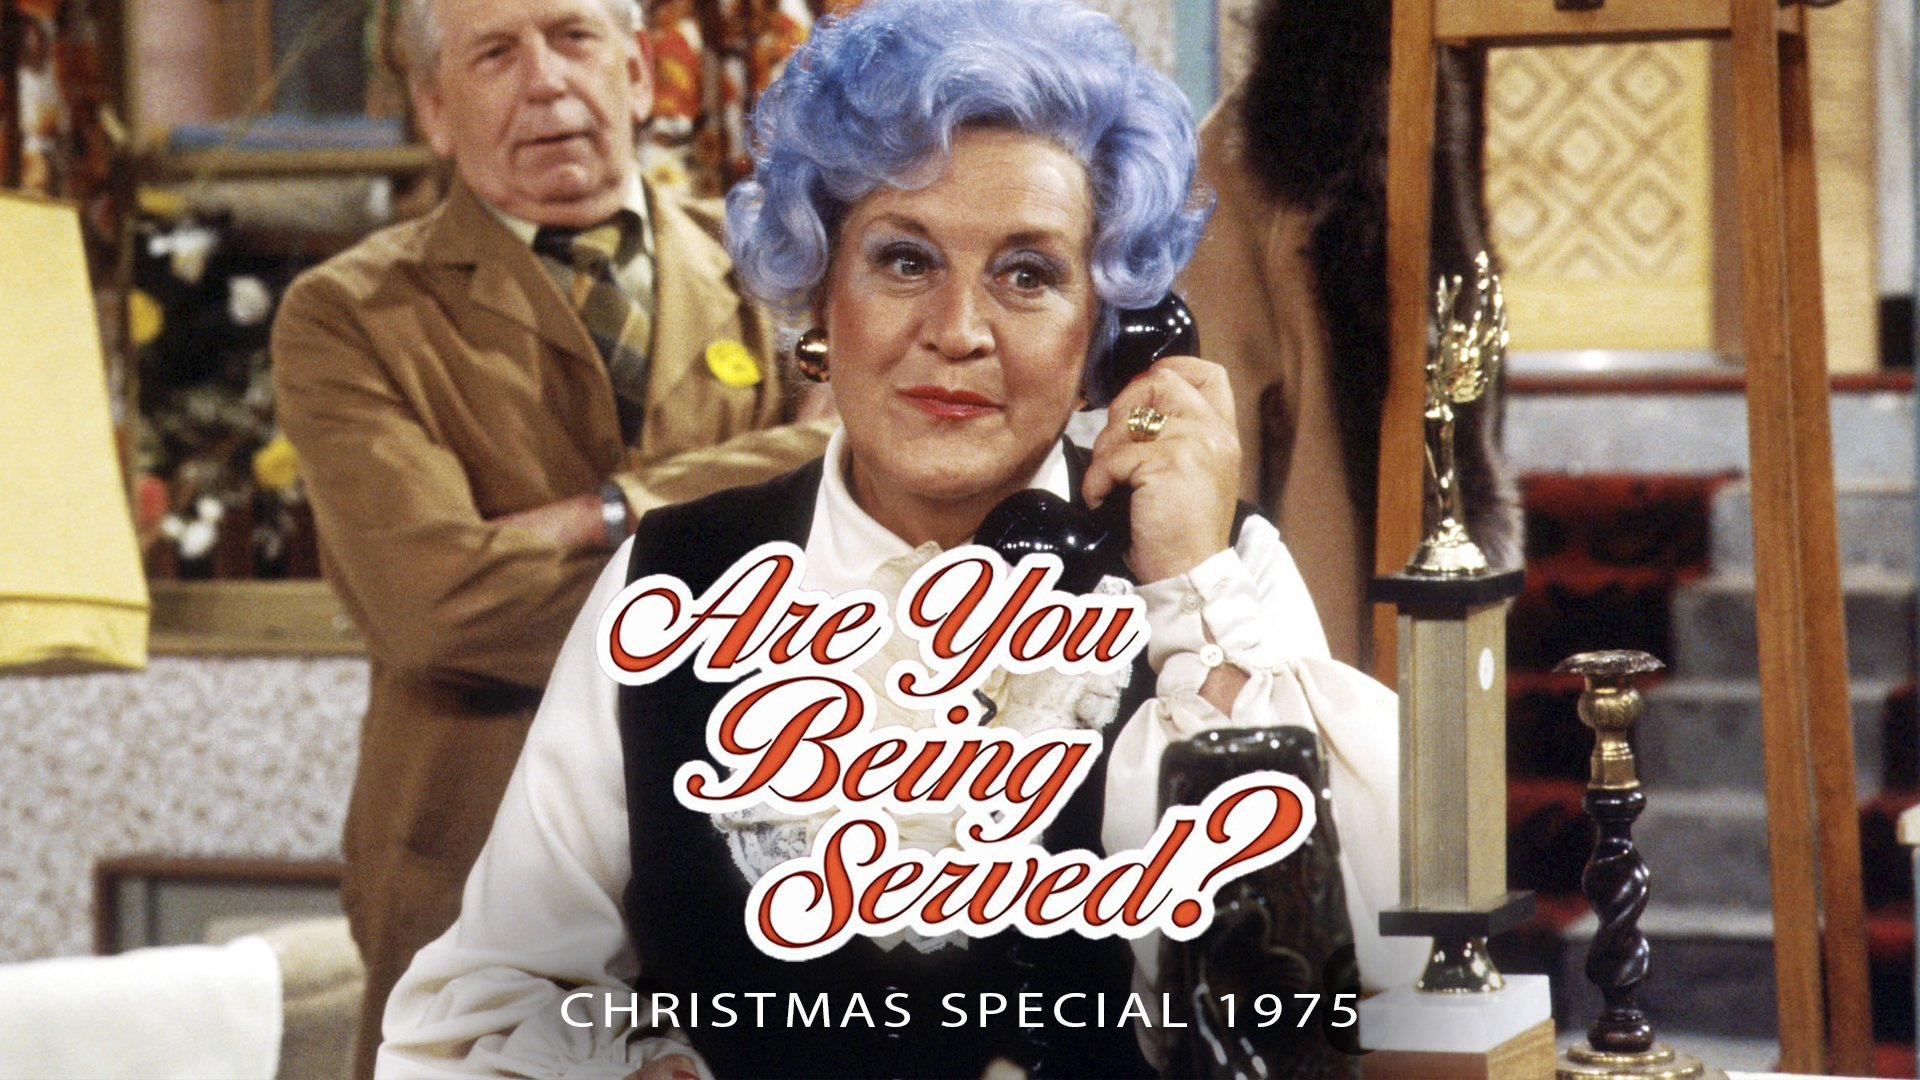 Are You Being Served? Christmas Special 1975: Christmas Crackers on BritBox UK